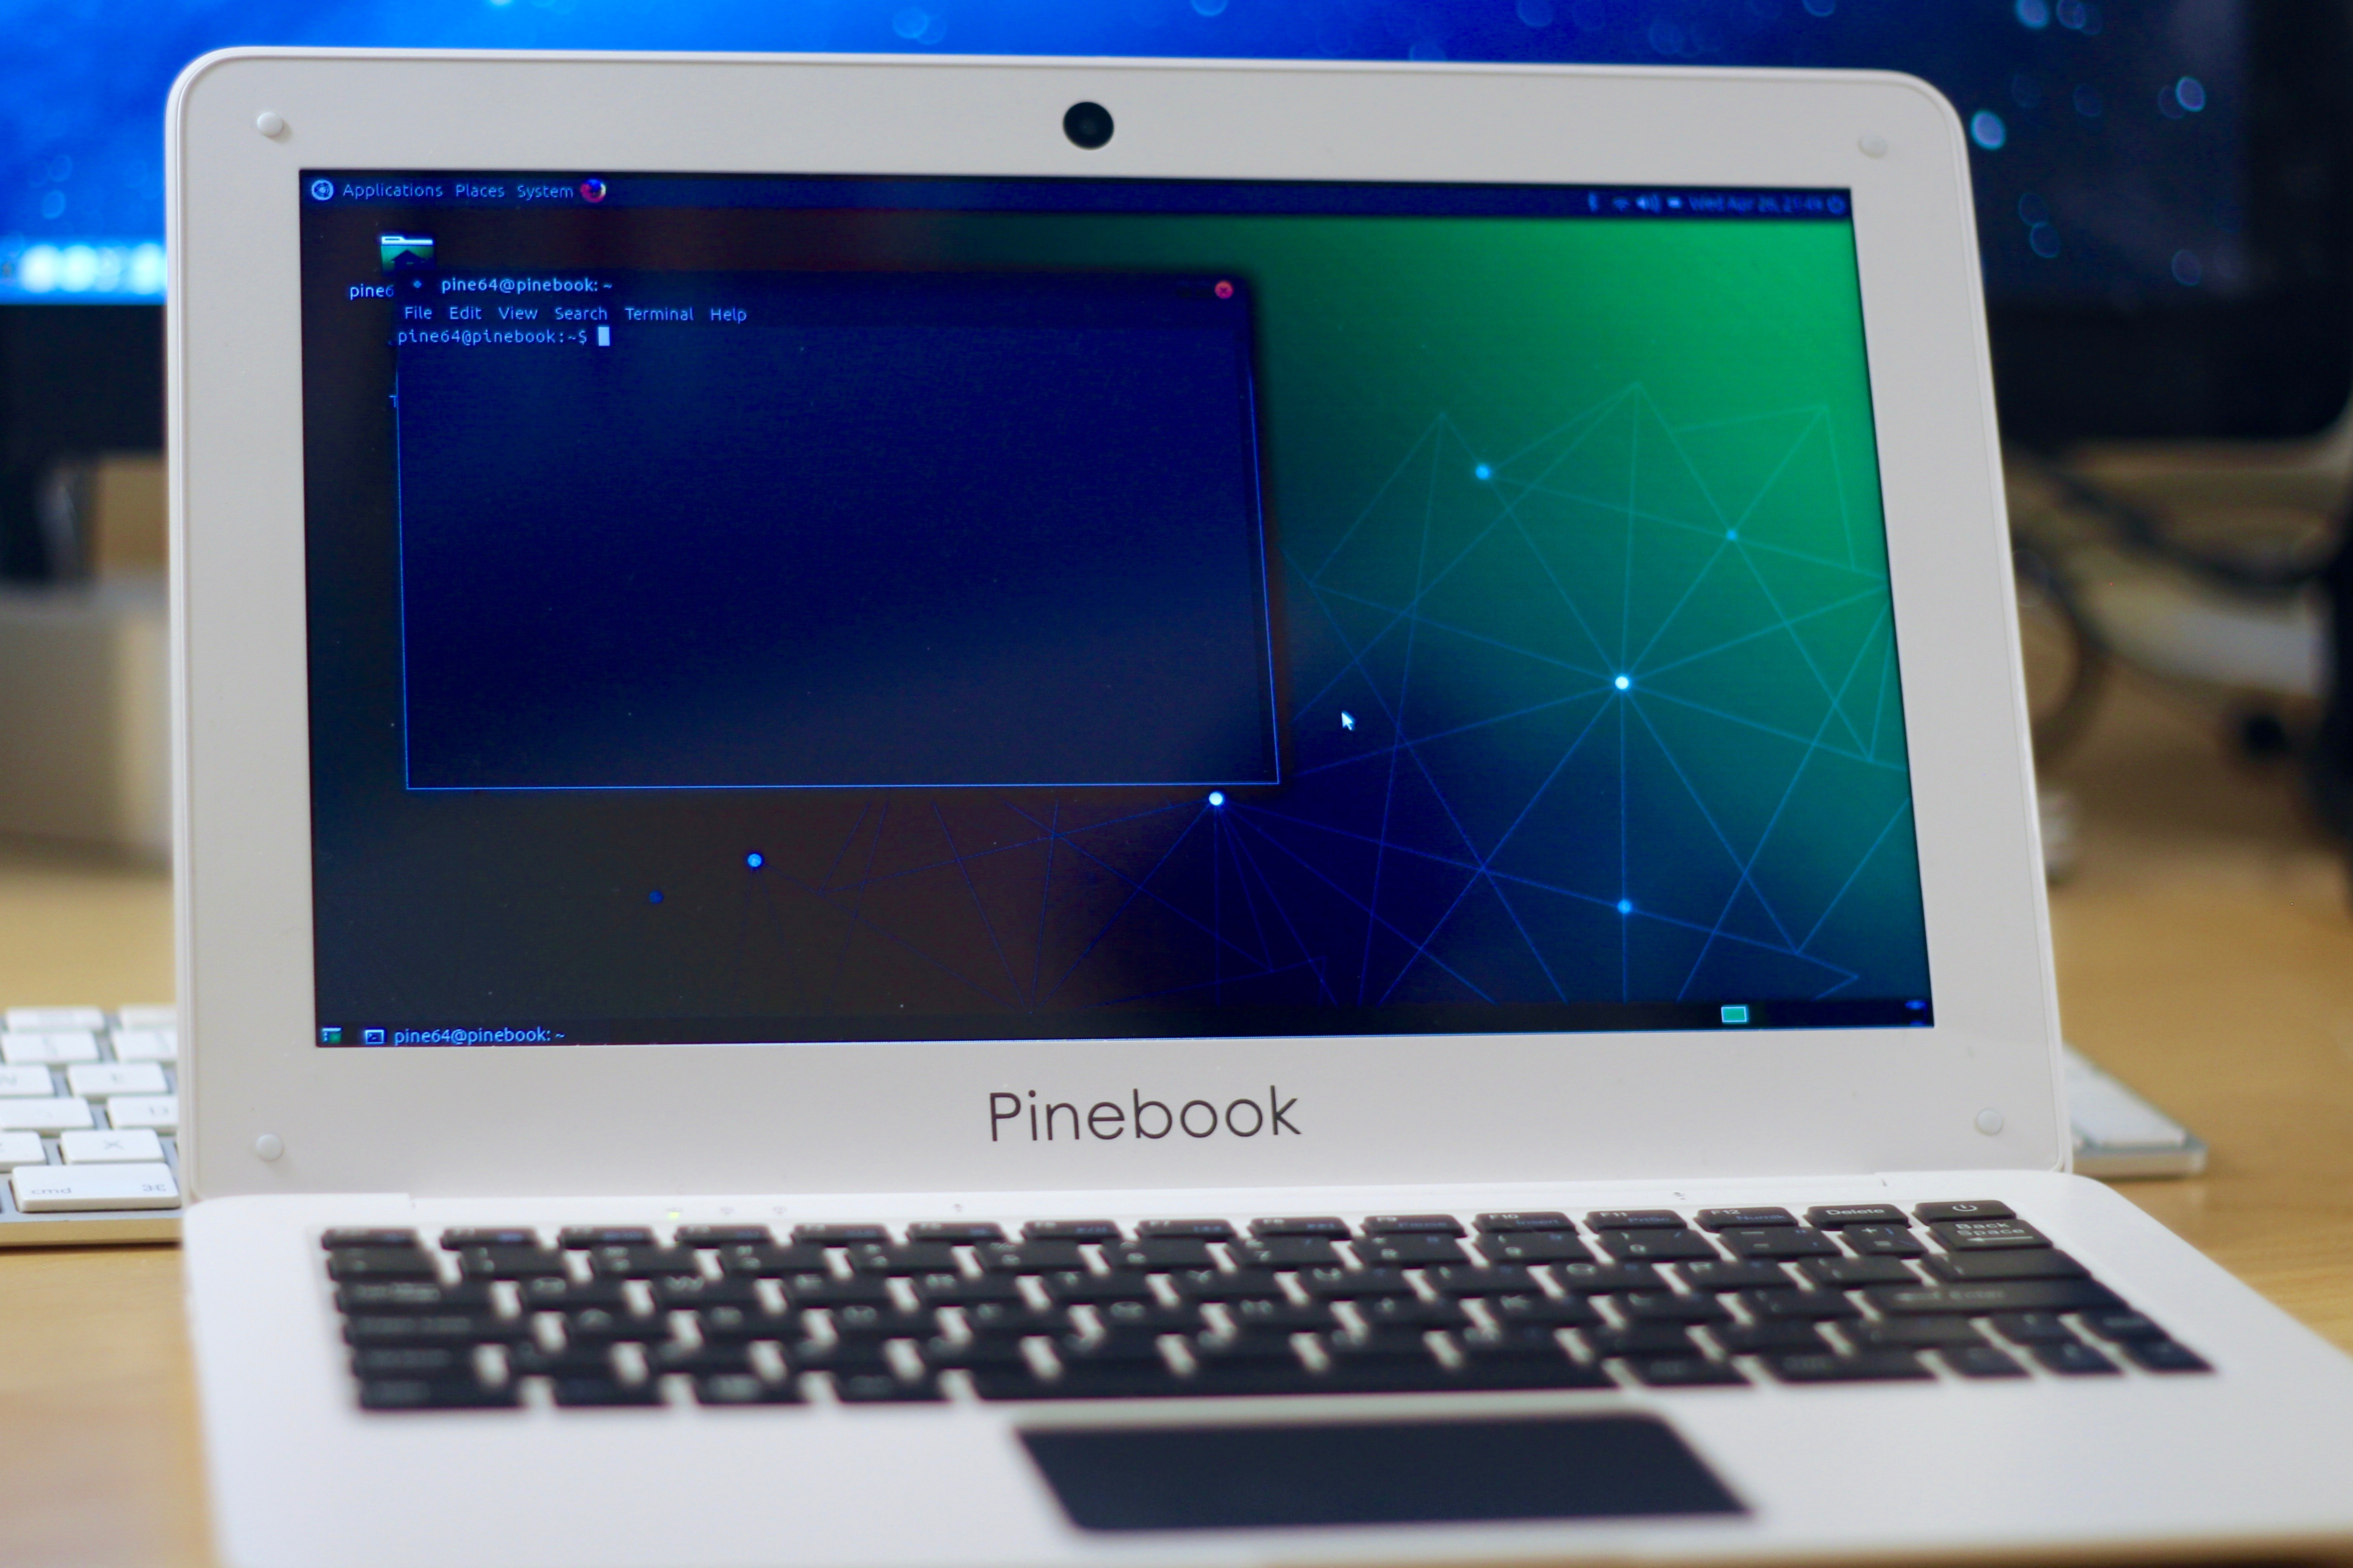 Hands On With The Pinebook | Hackaday